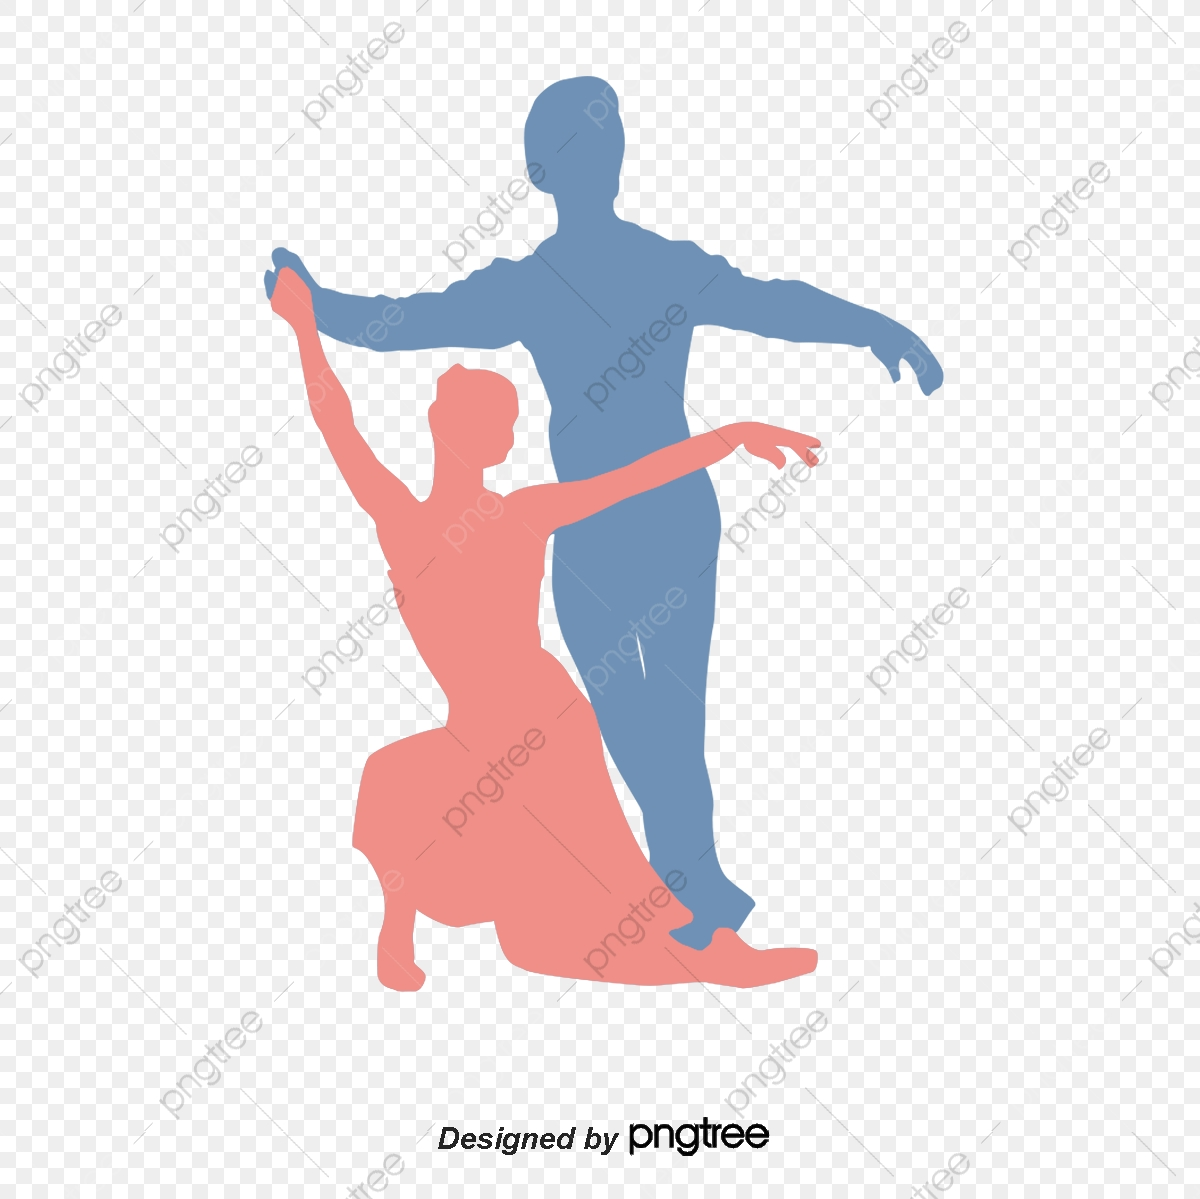 Ballroom Dancing Poster Png Vector Elements Poster Vector Ballroom Dancing Posters Element Png Transparent Clipart Image And Psd File For Free Download